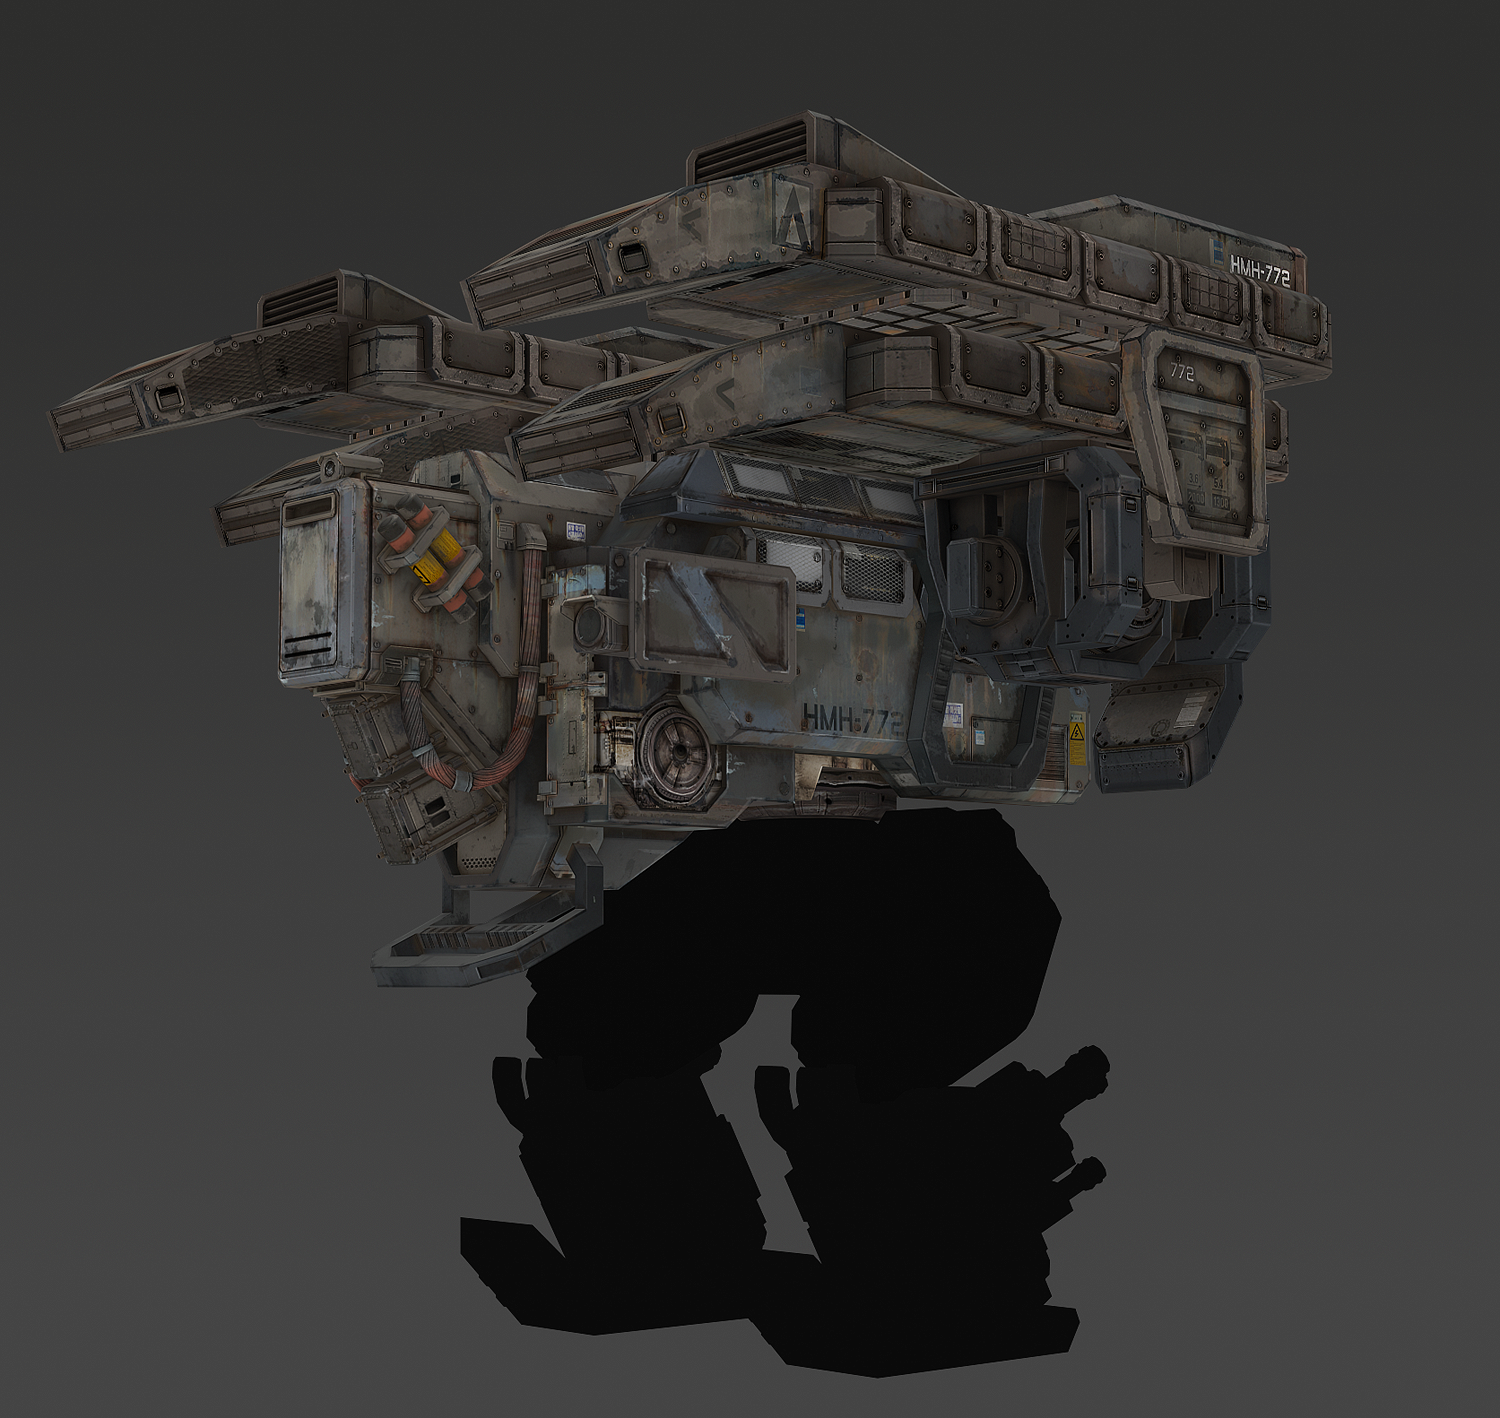 gedes_texture_wip02_flat.png